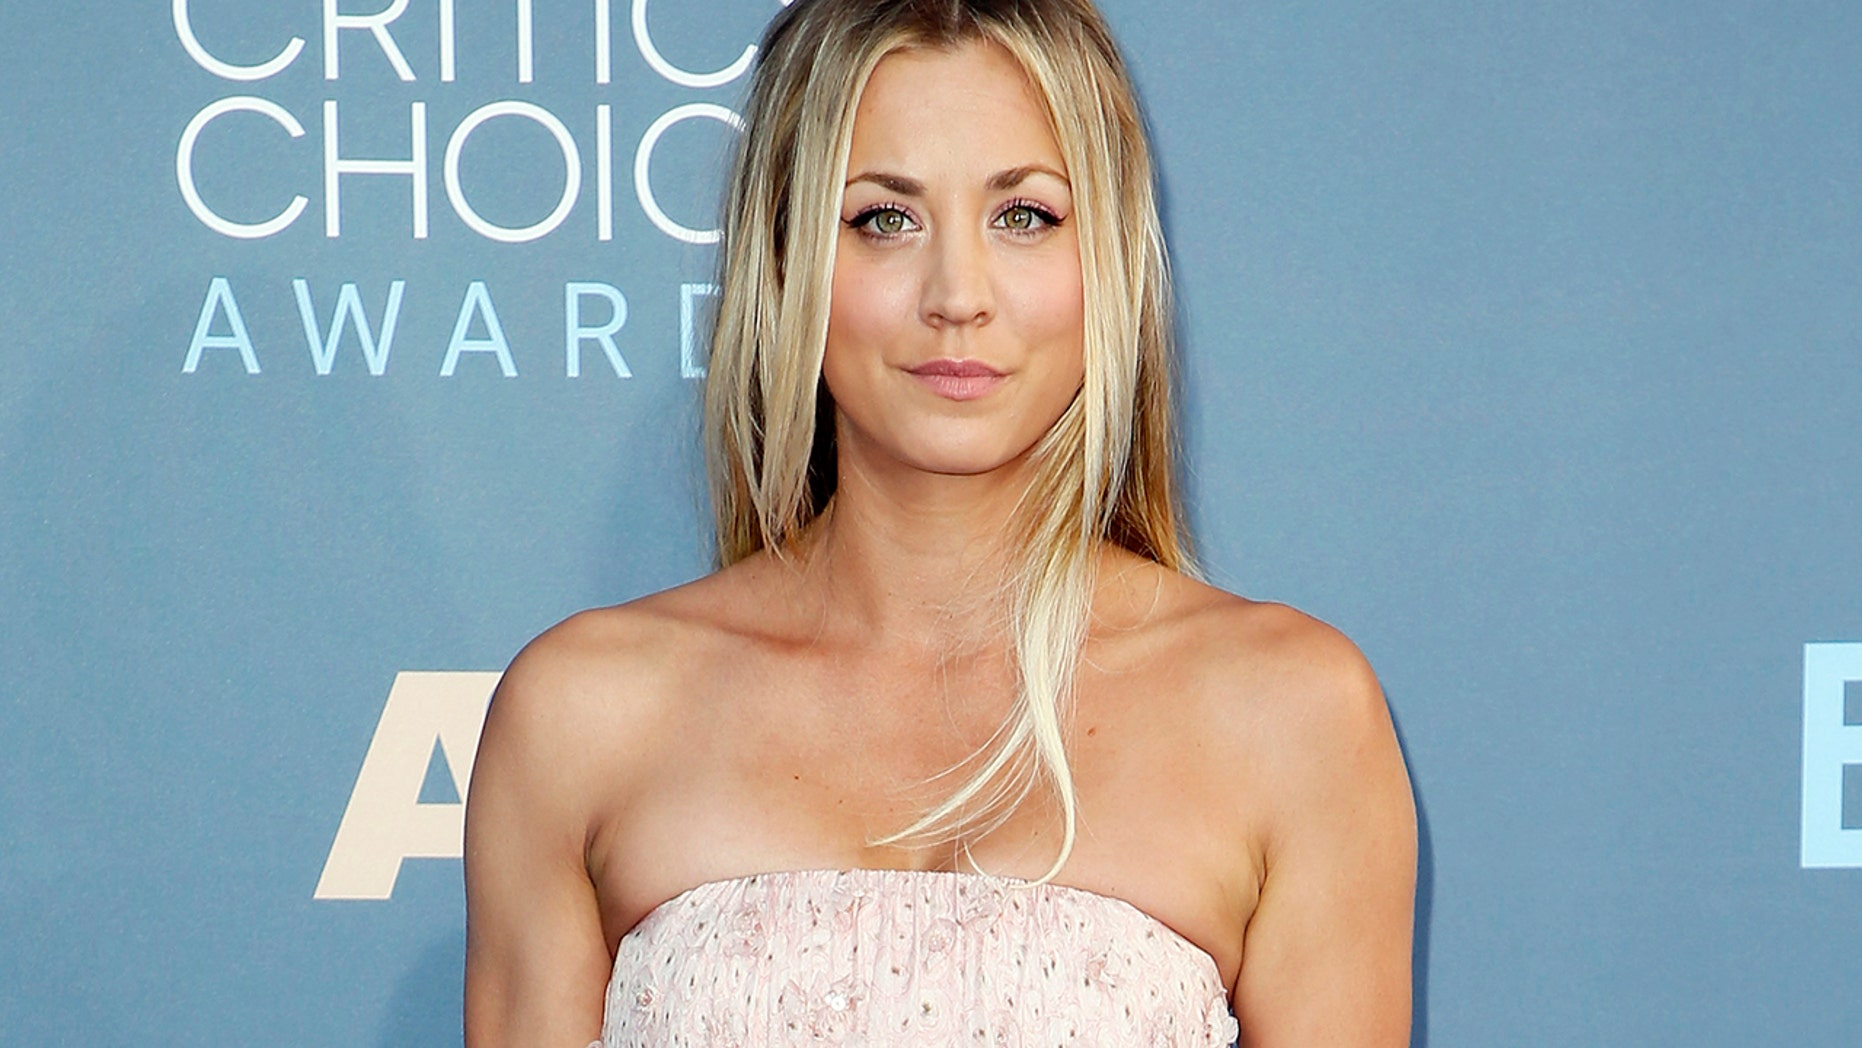 Images Kaley Cuoco nudes (85 photo), Tits, Hot, Selfie, in bikini 2020